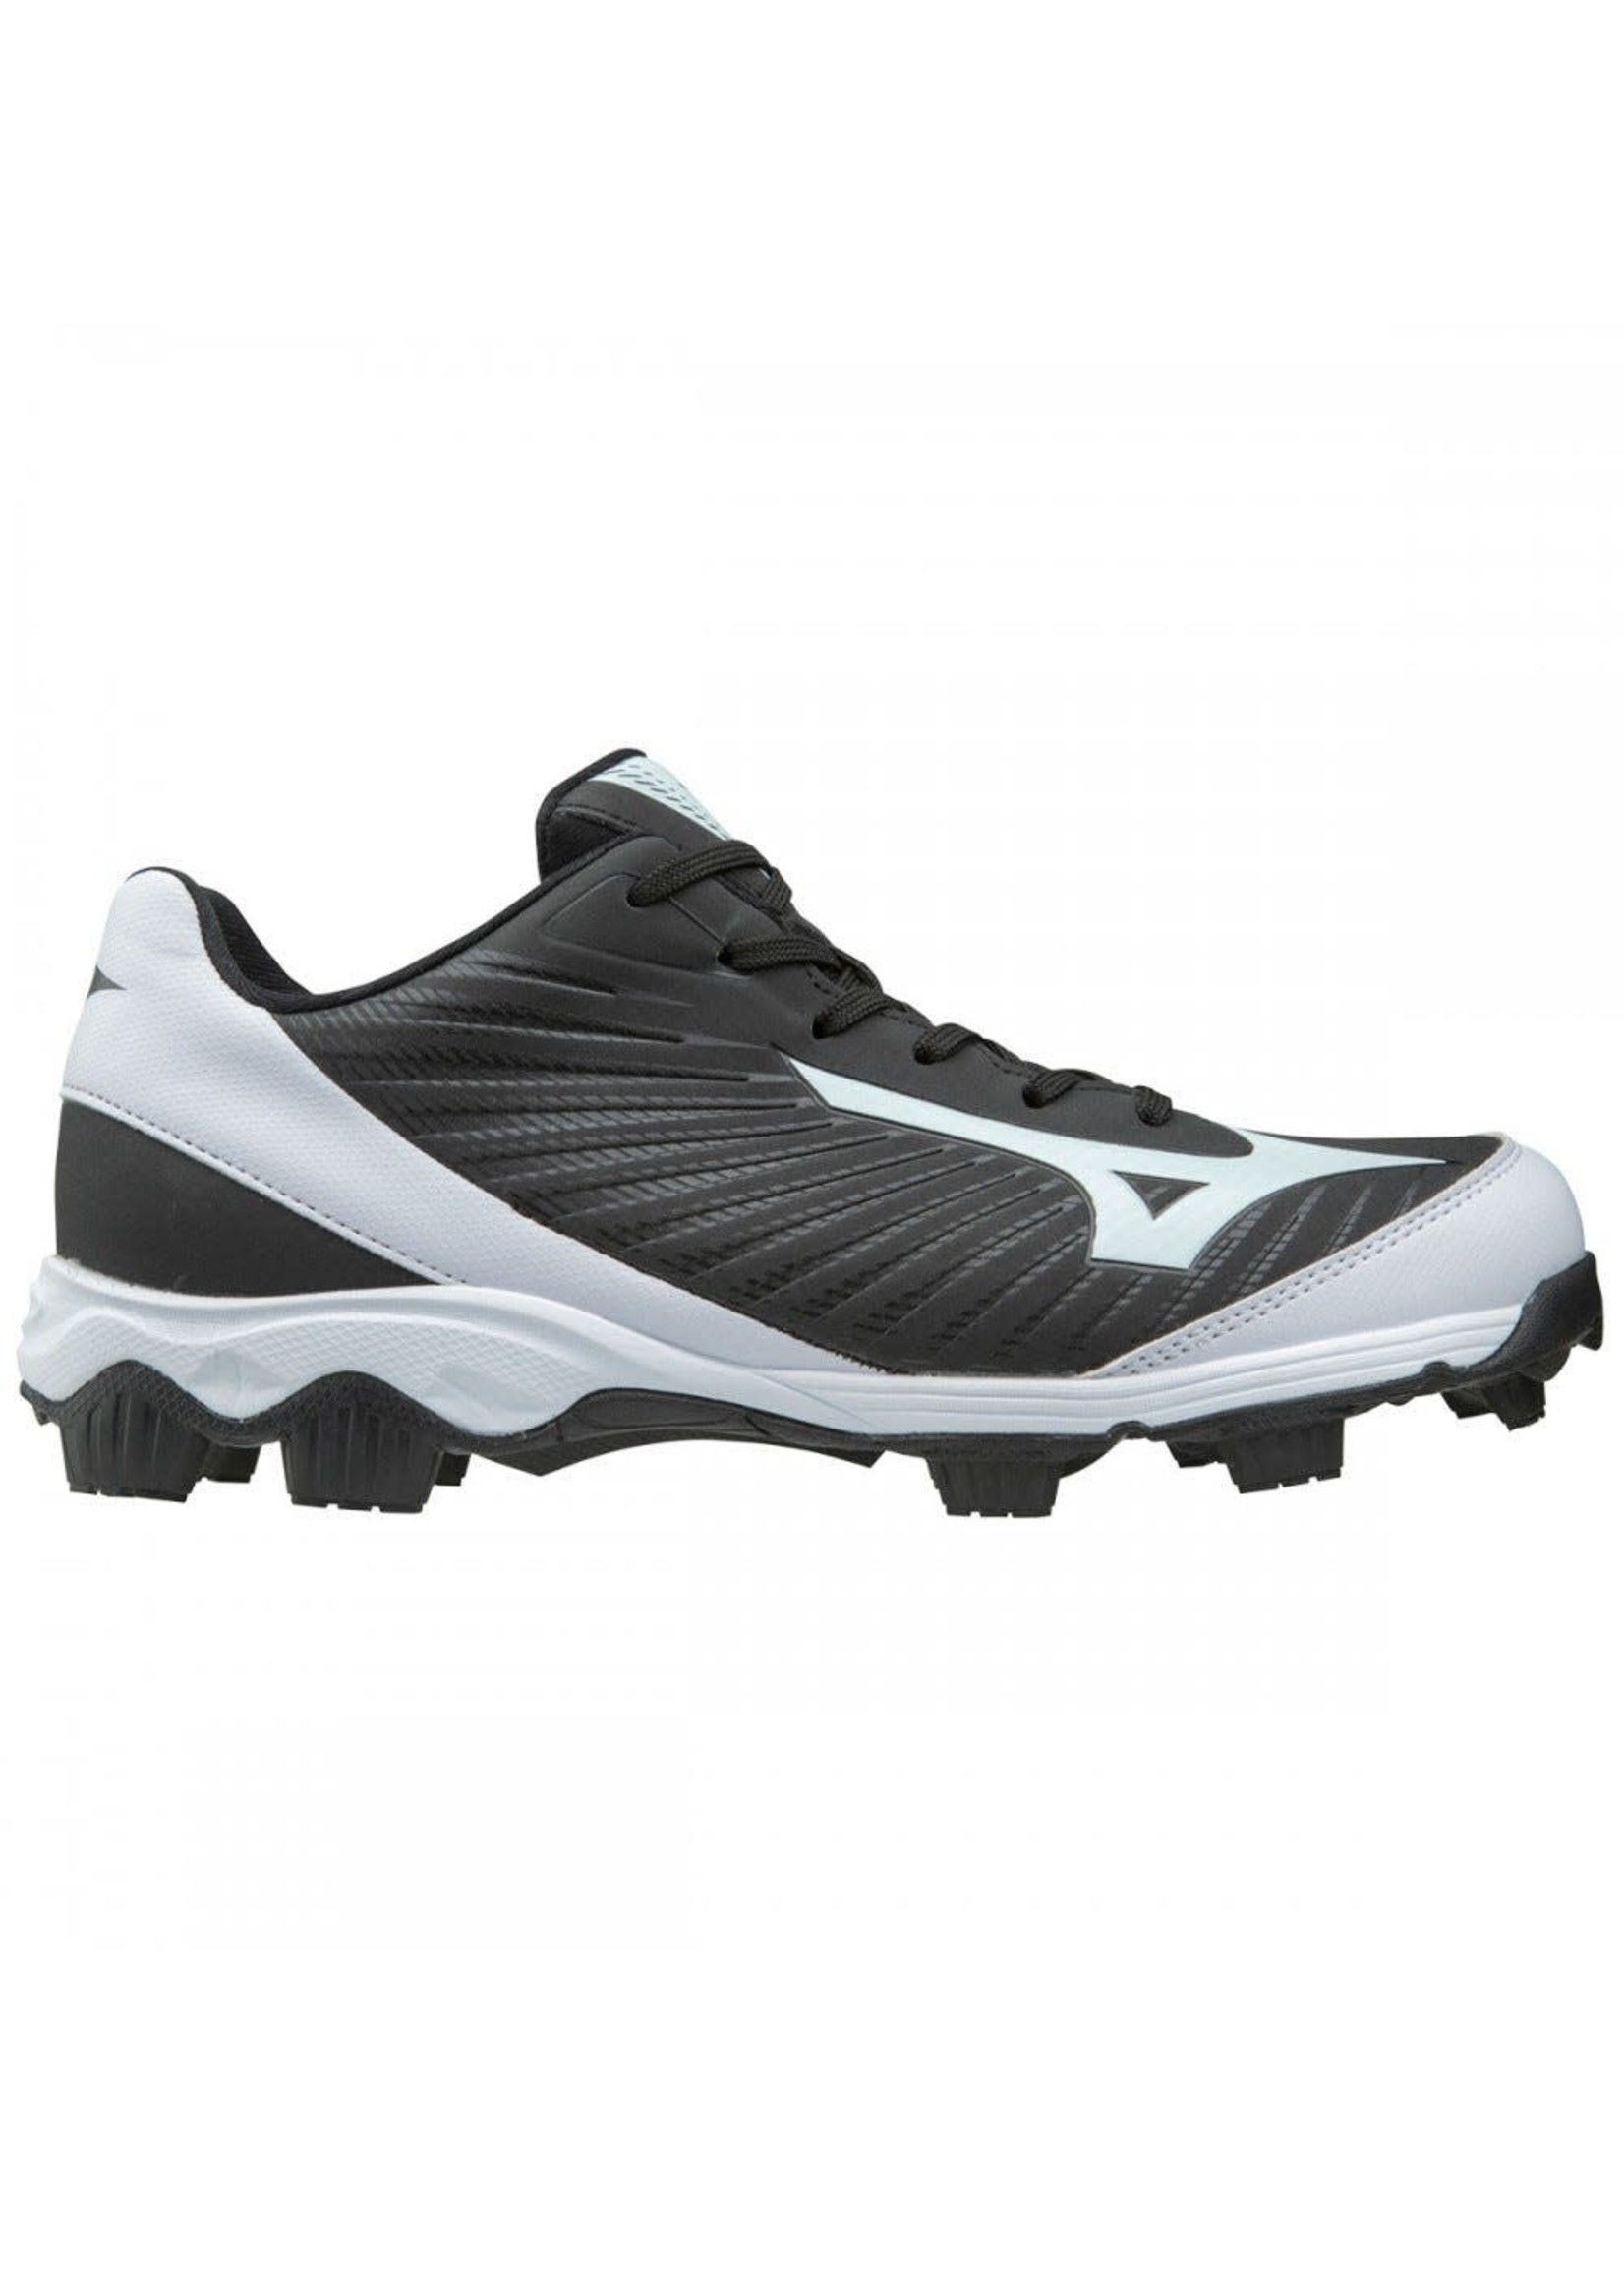 MIZUNO 9-SPIKE ADV YTH FRANCHISE 9 MD BLACK/WHITE 4.5  YOUTH